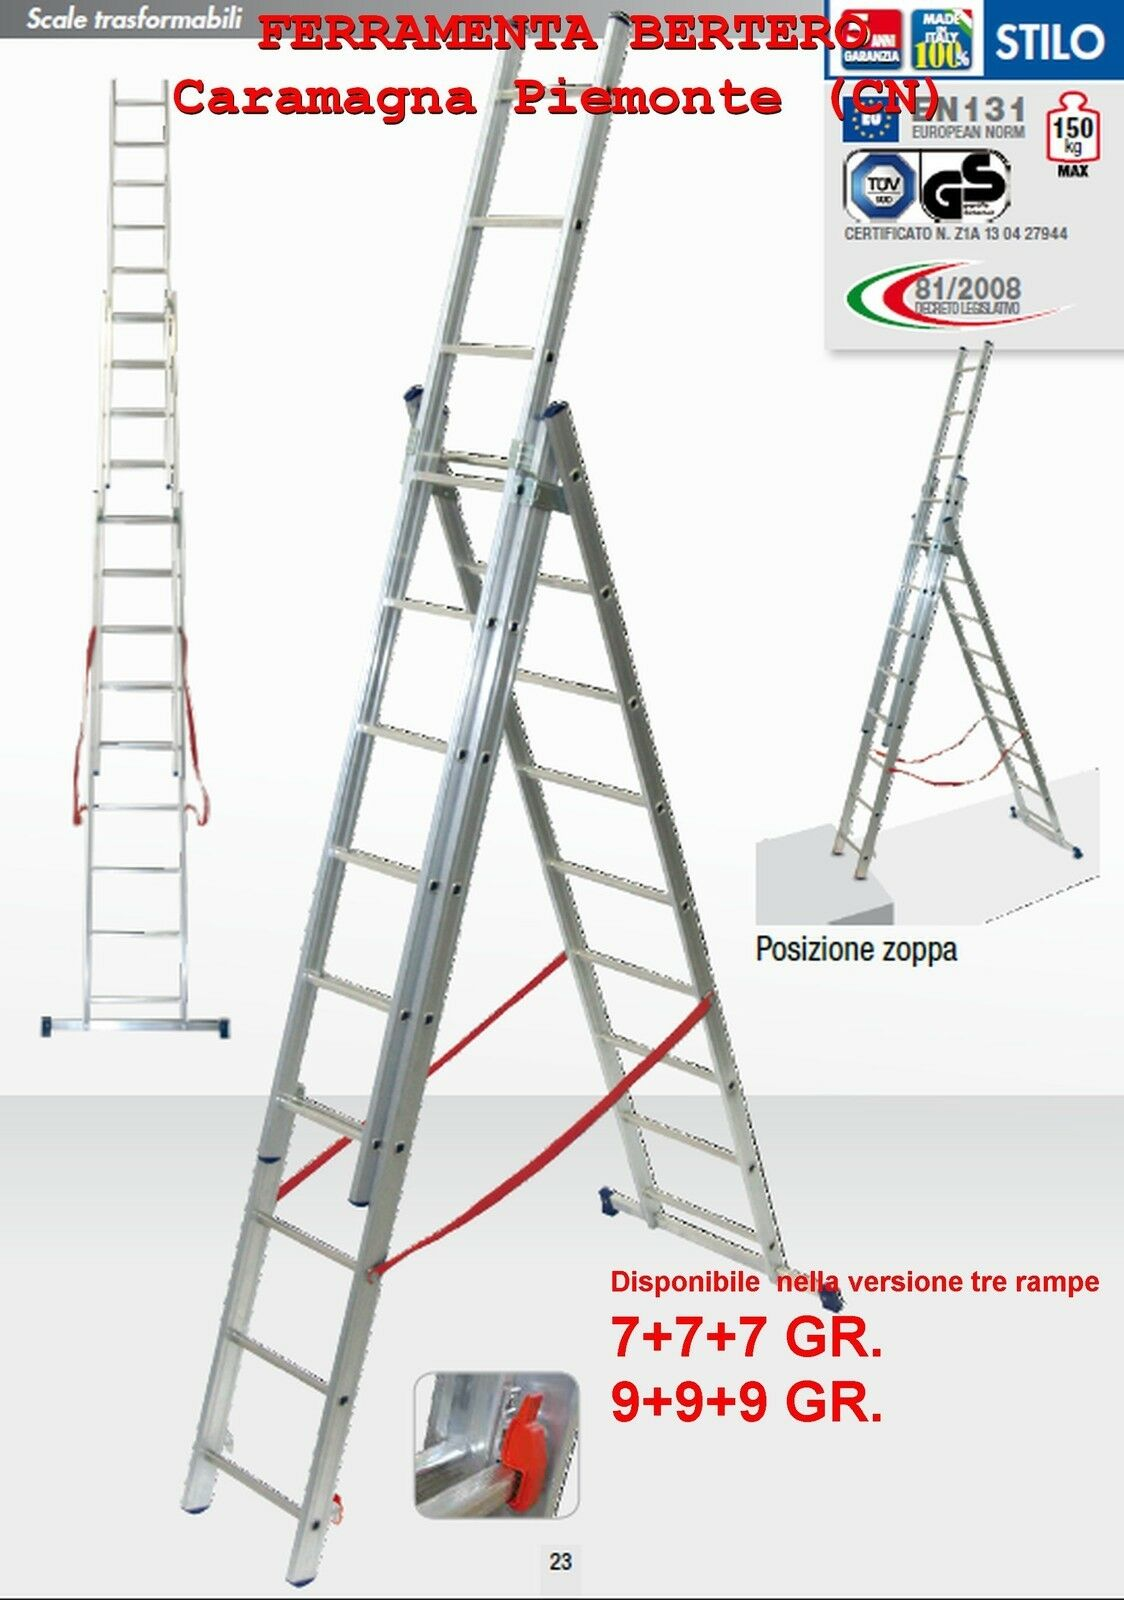 SCALA ALLUMINIO FACAL STILO 3 RAMPE  DISPONIBILE DA 7+7+7  - 9+9+9 GRADINI